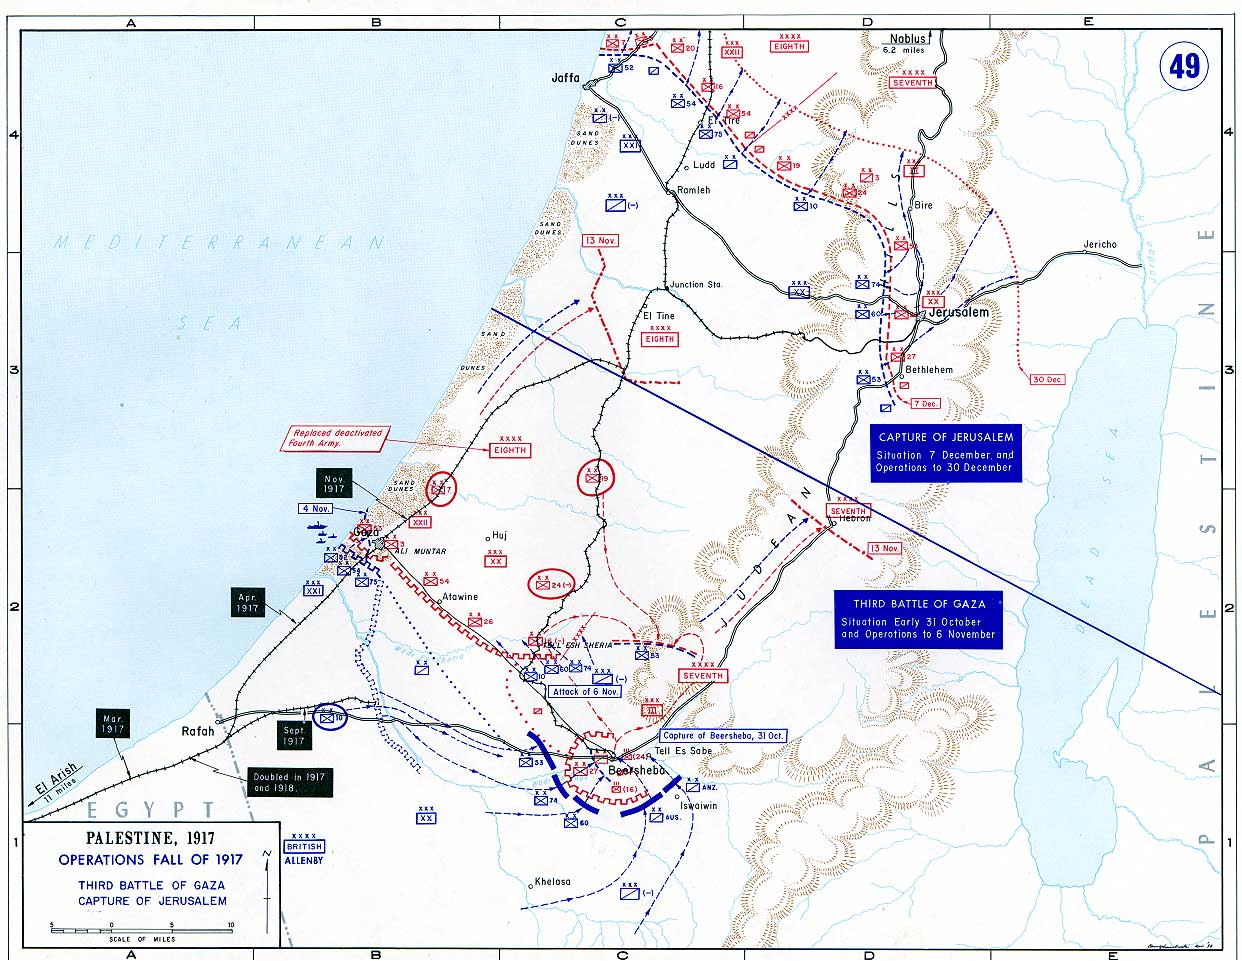 WW1 War in the Mideast  Map Of Basra on map of istanbul, map of mogadishu, map of hankou, map of ramallah, map of karachi, map of kabul, map of irbil, map of sulaymaniyah, map of shuwaikh port, map of jeddah, map of ormuz, map of kurdish people, map of bukhara, map of fustat, map of riyadh, map of zagros mountains, map of tel aviv, map of delhi, map of samarkand, map of beirut,